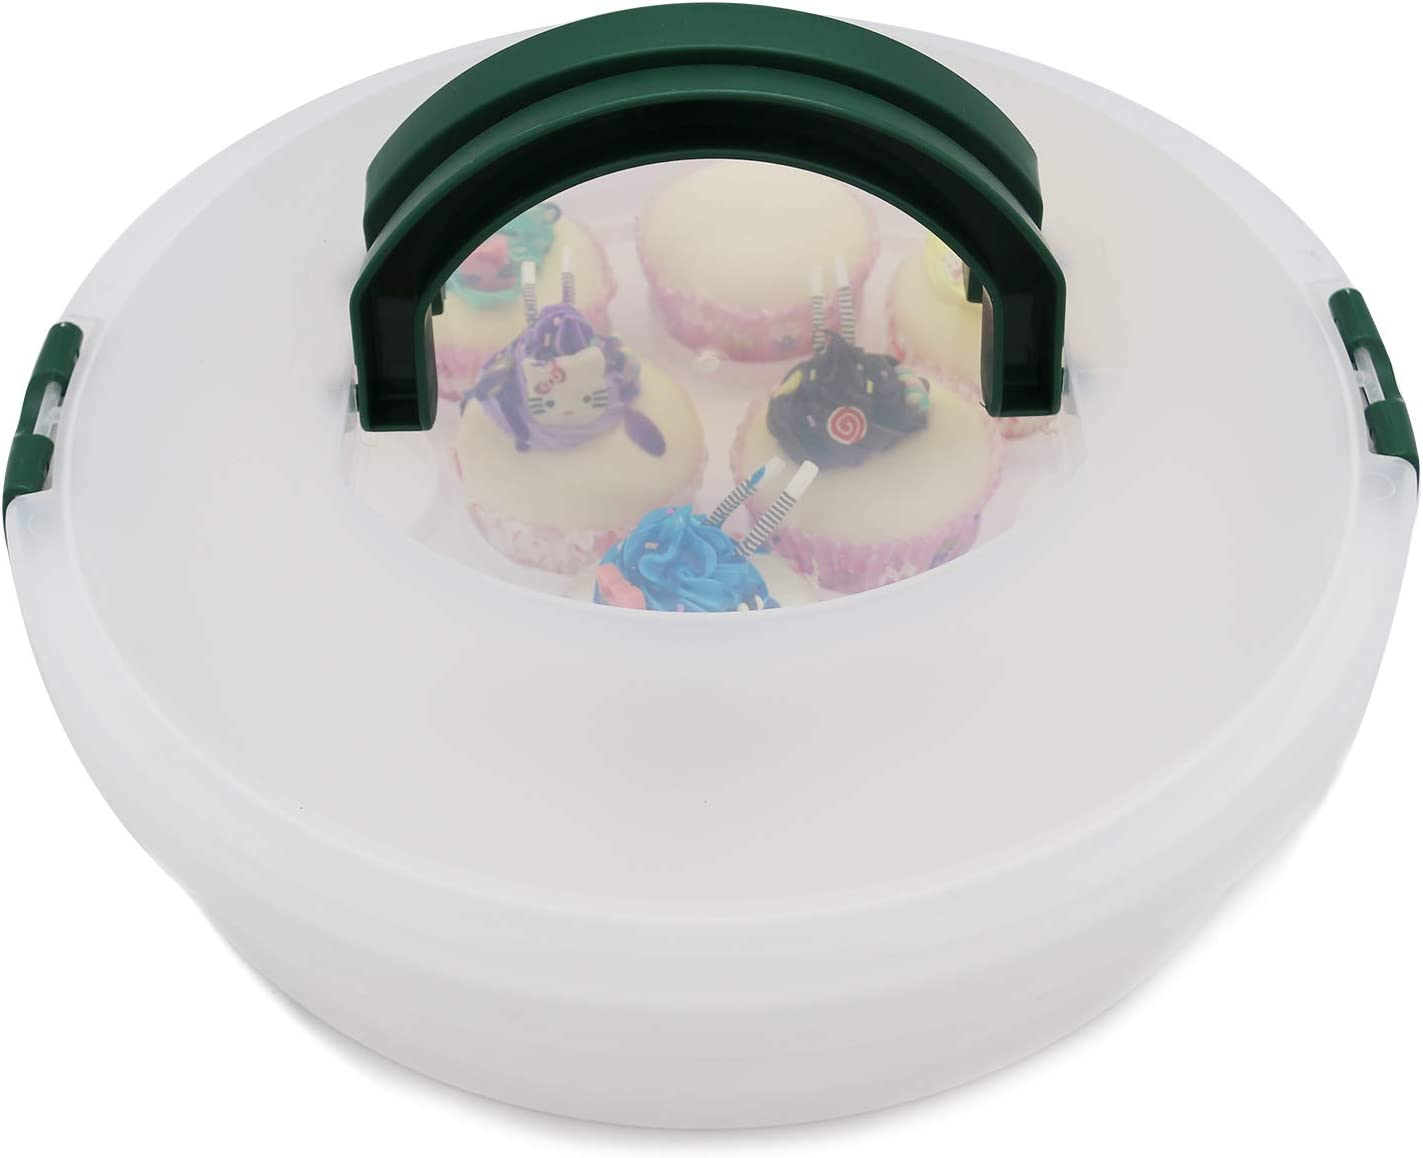 Portable Pie Cupcake Carrier with Lid and Tray 3-In-1 Round Cupcake Container Egg Holder Deviled Egg Tray Muffin Tart Cookie Food Keeper 10 Inch